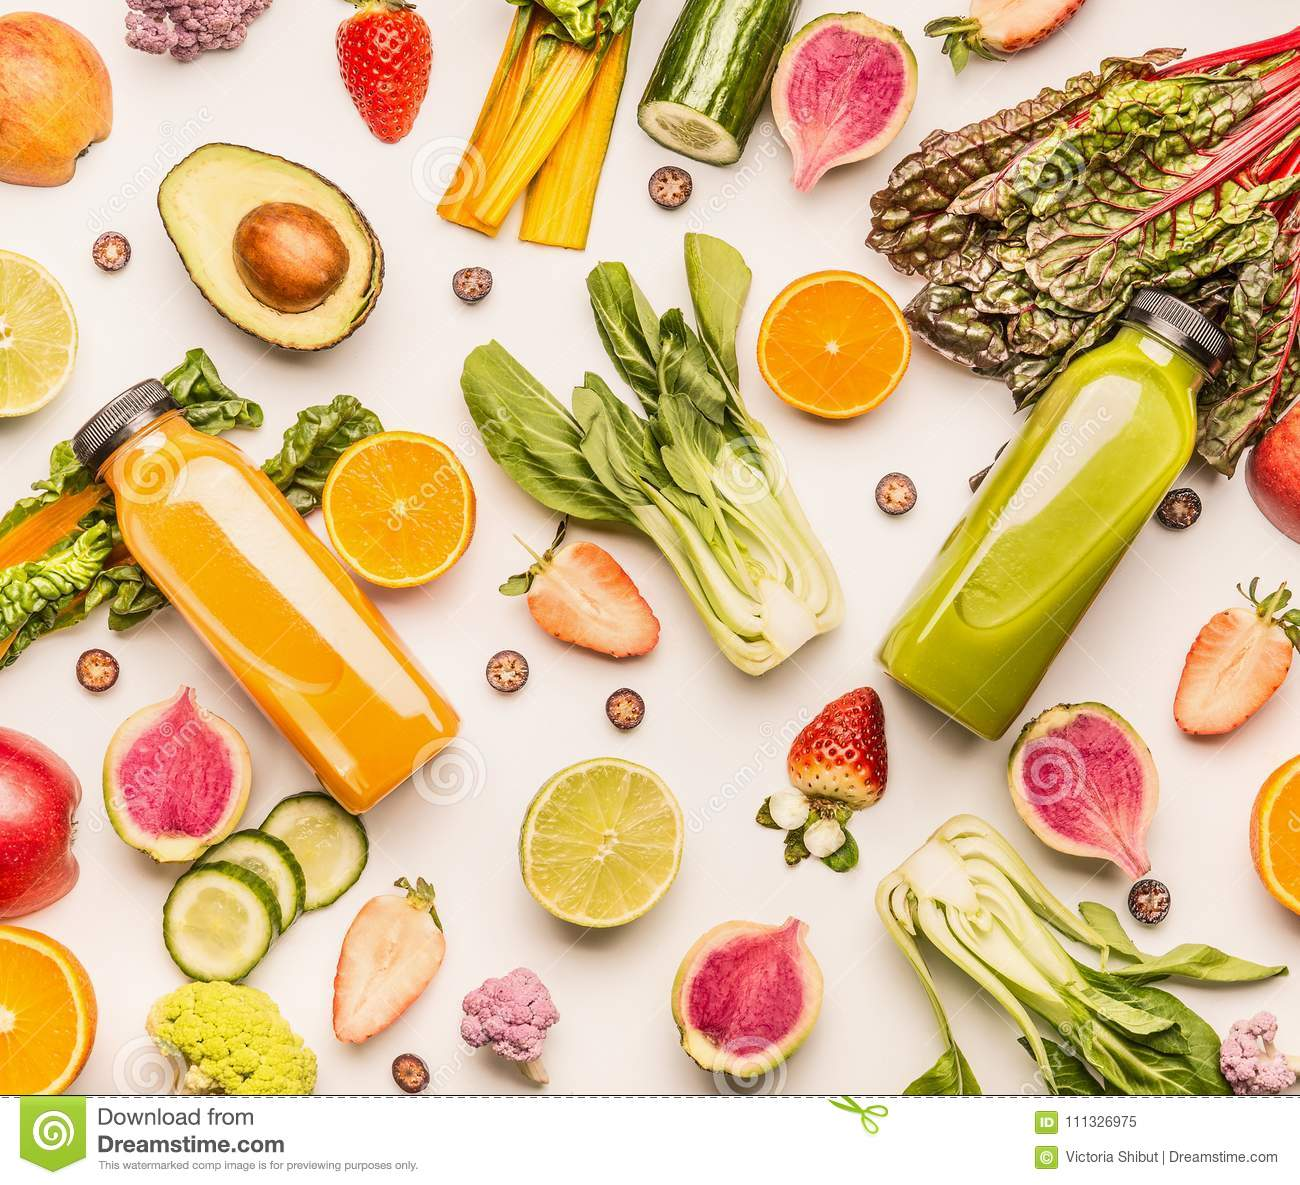 Green and yellow smoothie bottles with organic fruits and vegetables ingredients: kale, avocado,cucumber, orange, strawberries, bl